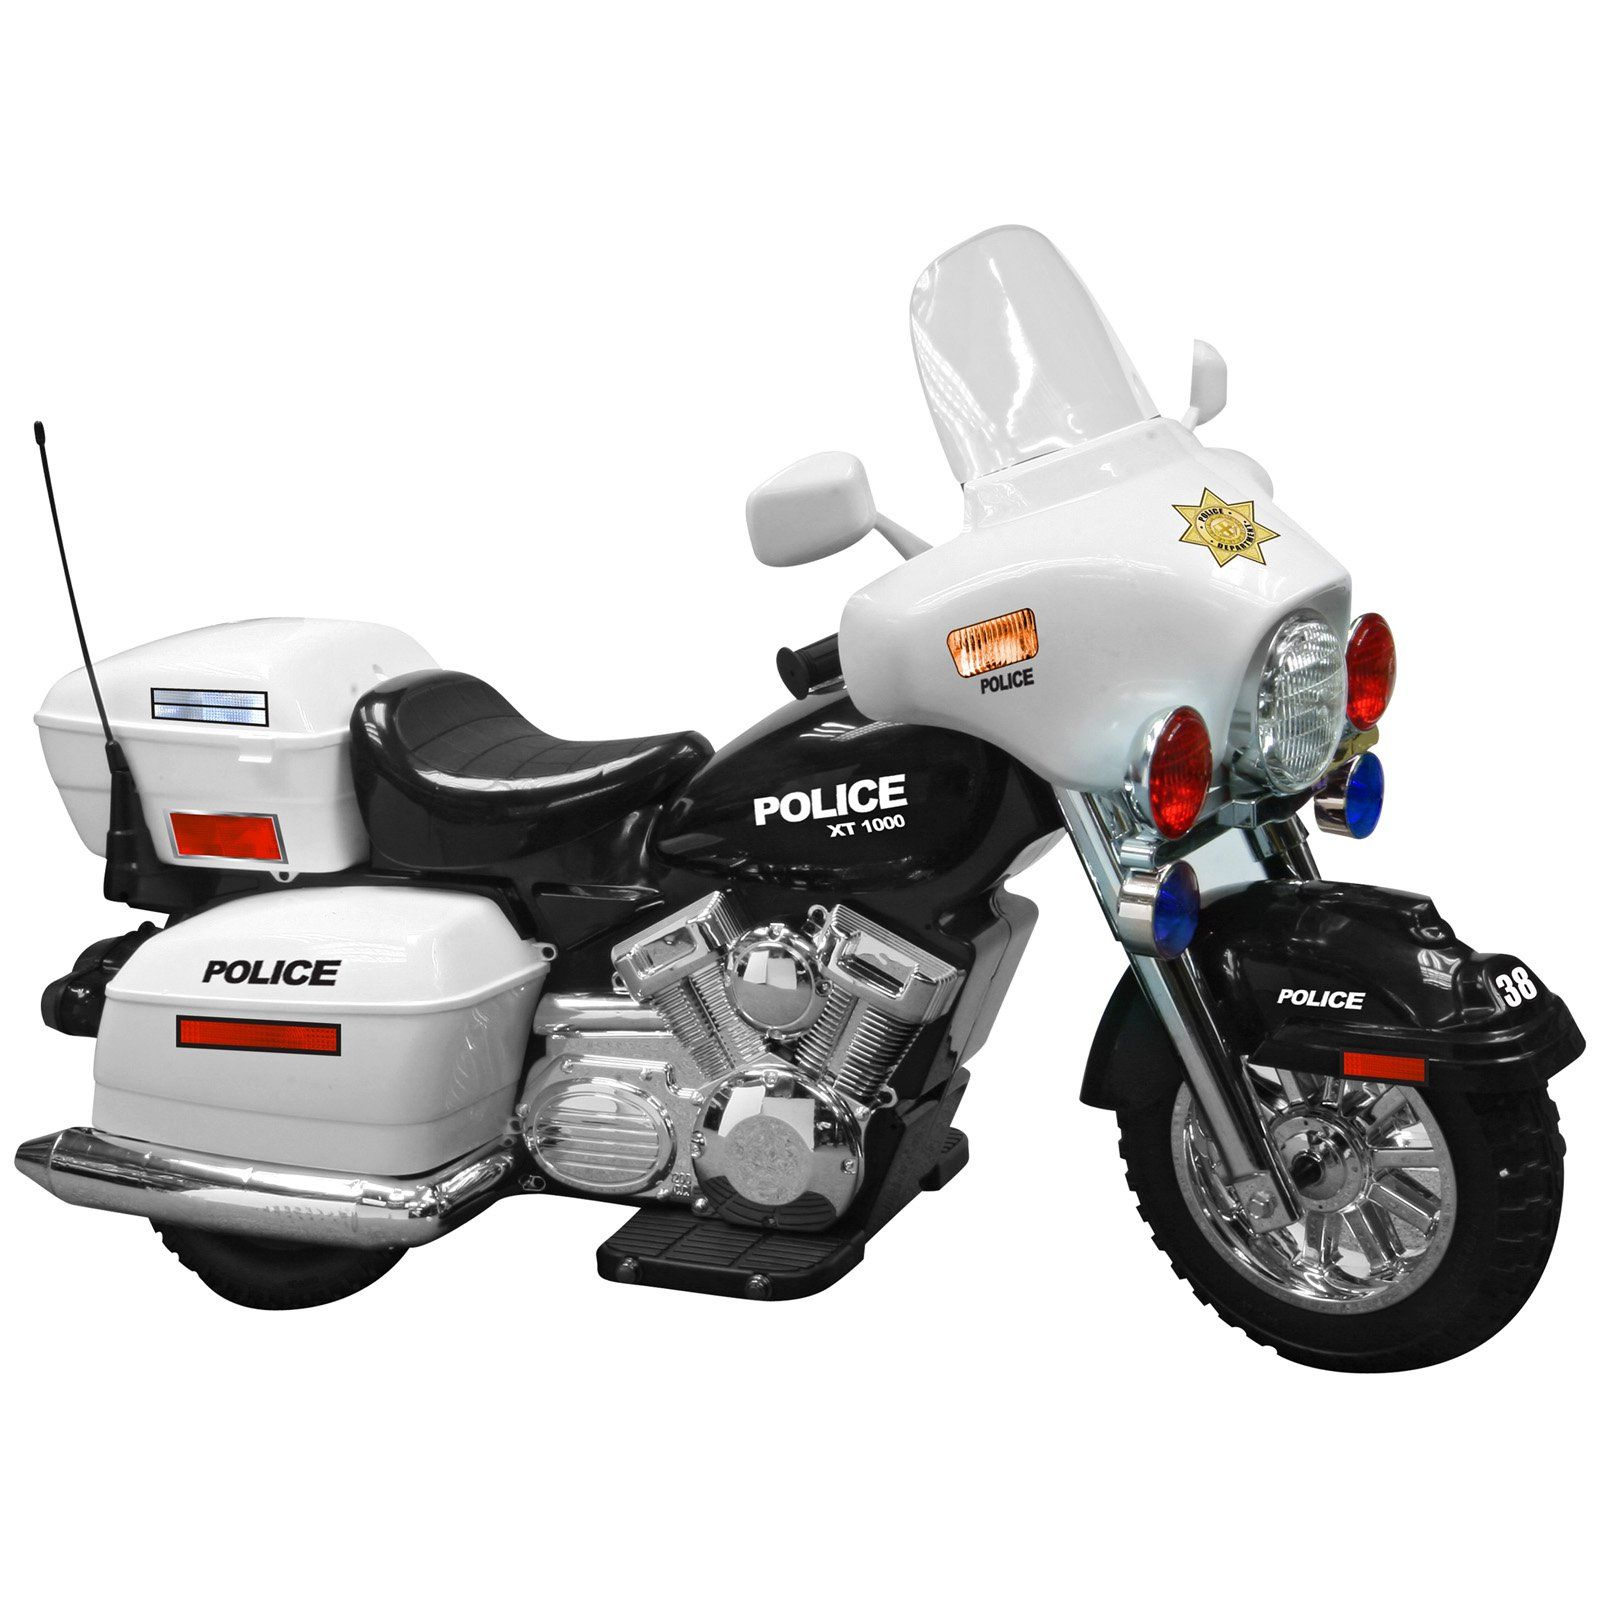 Kid Motorz Police Motorcycle Battery Powered Riding Toy 0958